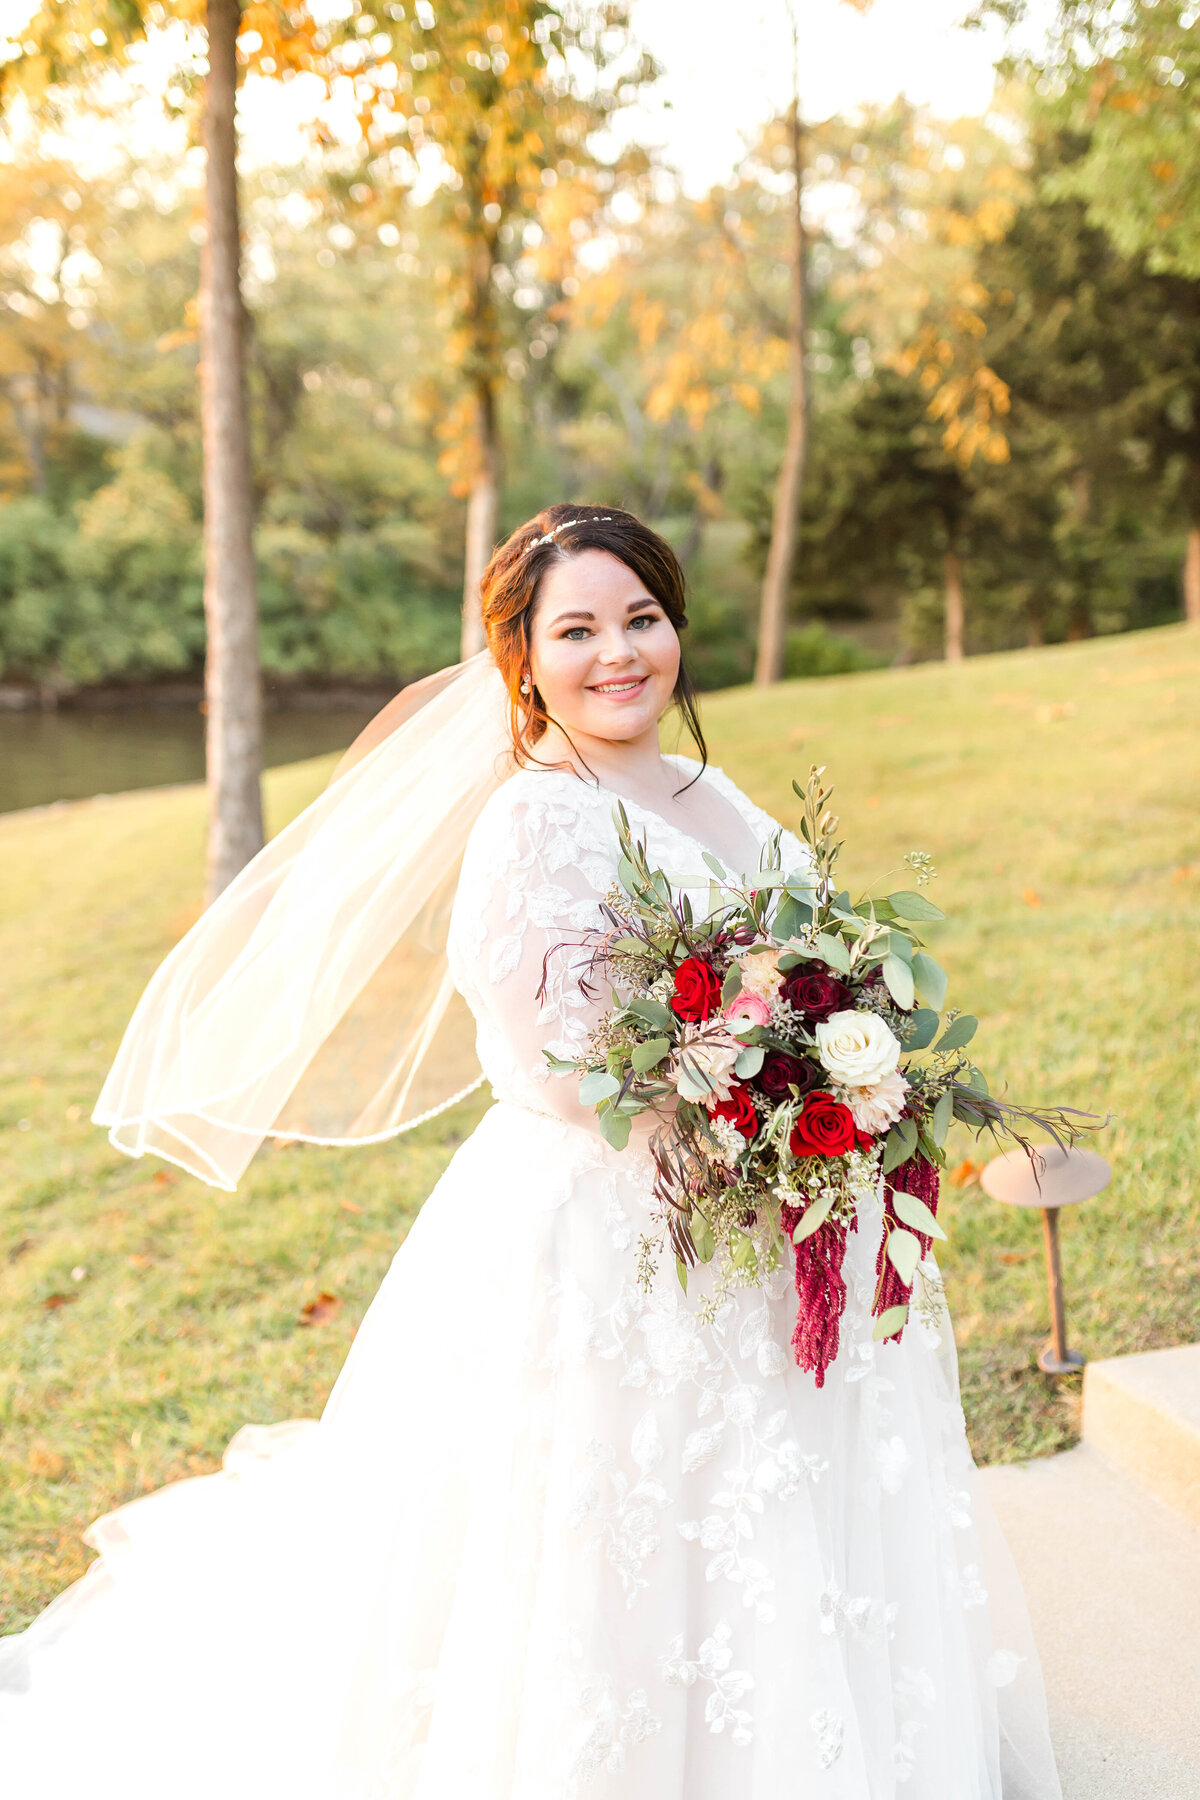 Springfield, IL Wedding Photographer115528